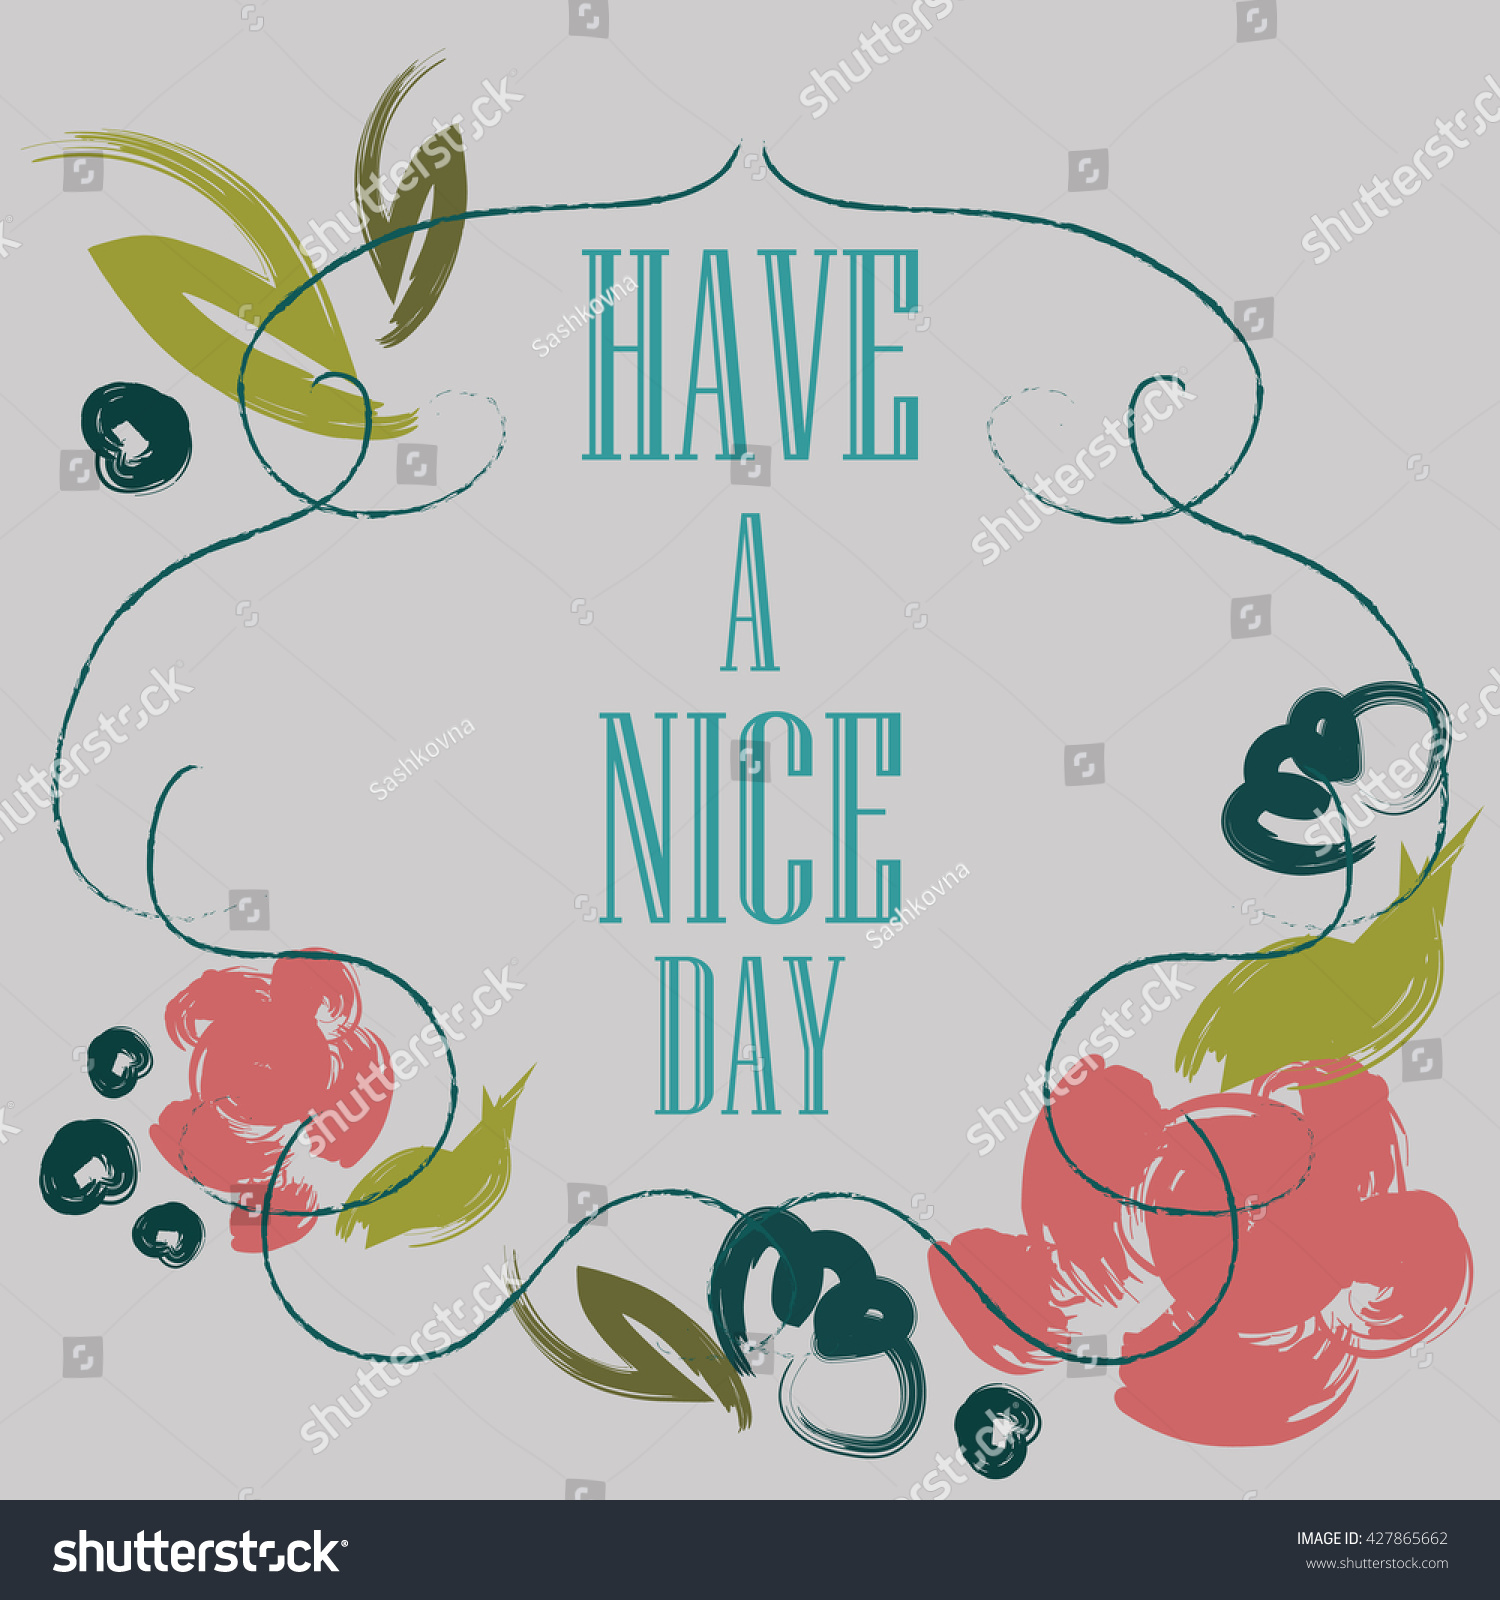 Have Nice Day Inscription Greeting Card Stock Vector (Royalty Free ...